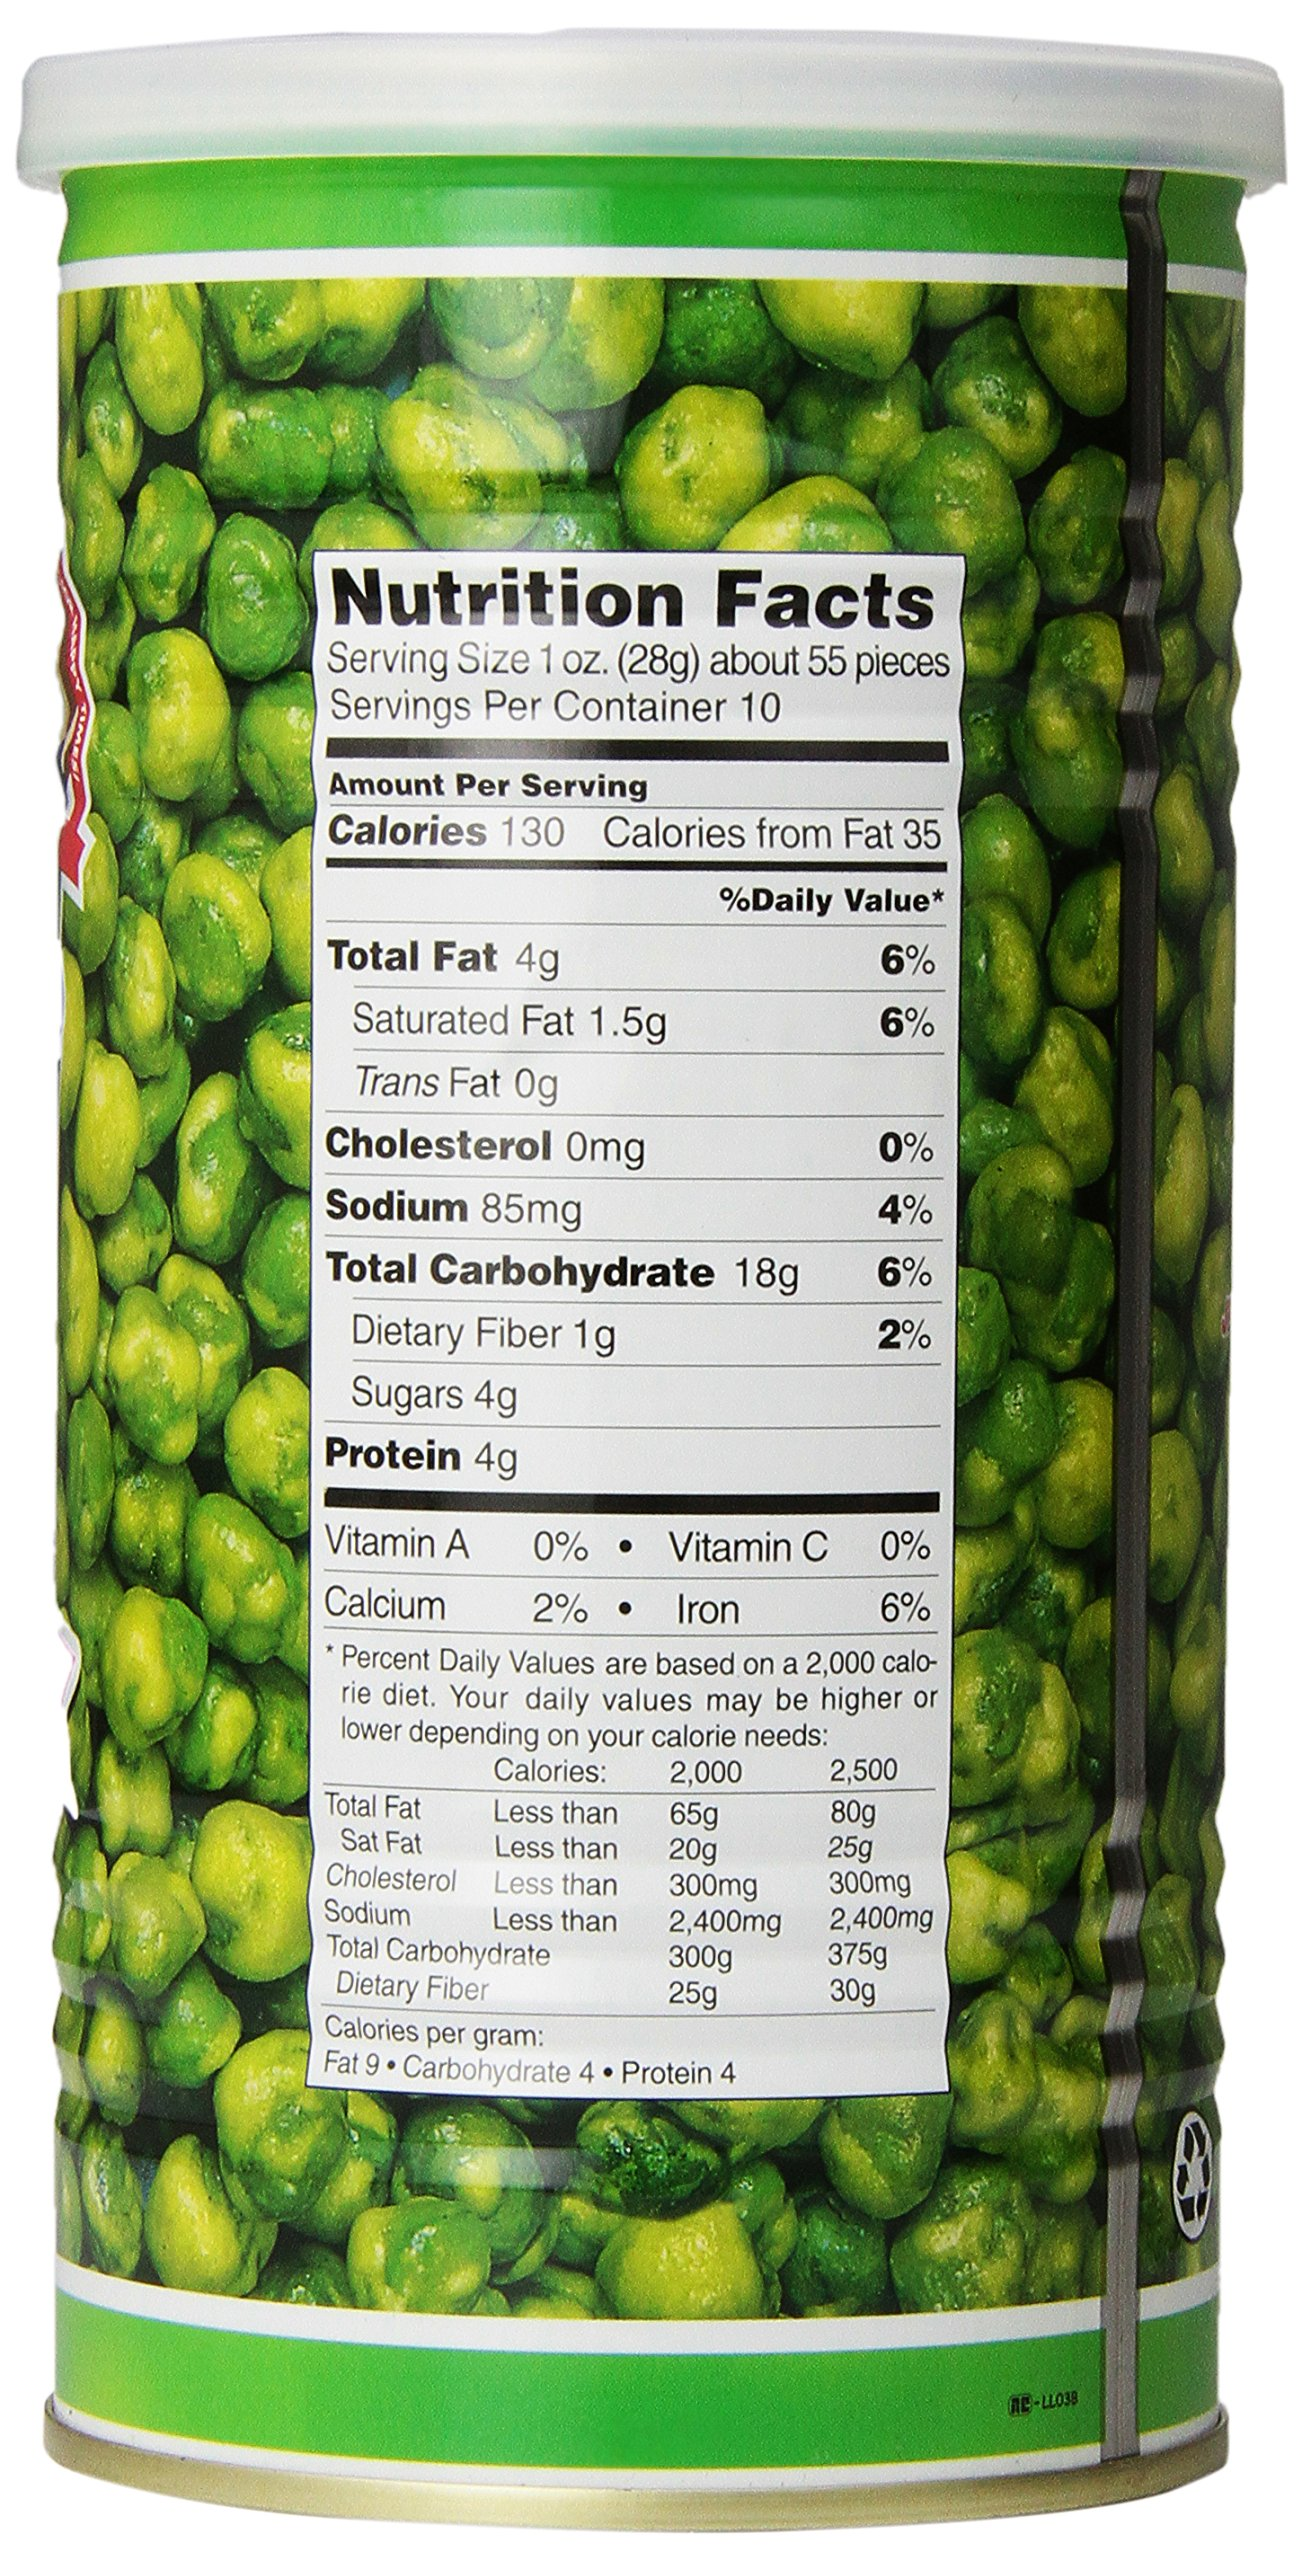 Hapi Snacks Hot Wasabi Peas 9.90oz by HAPI (Image #5)